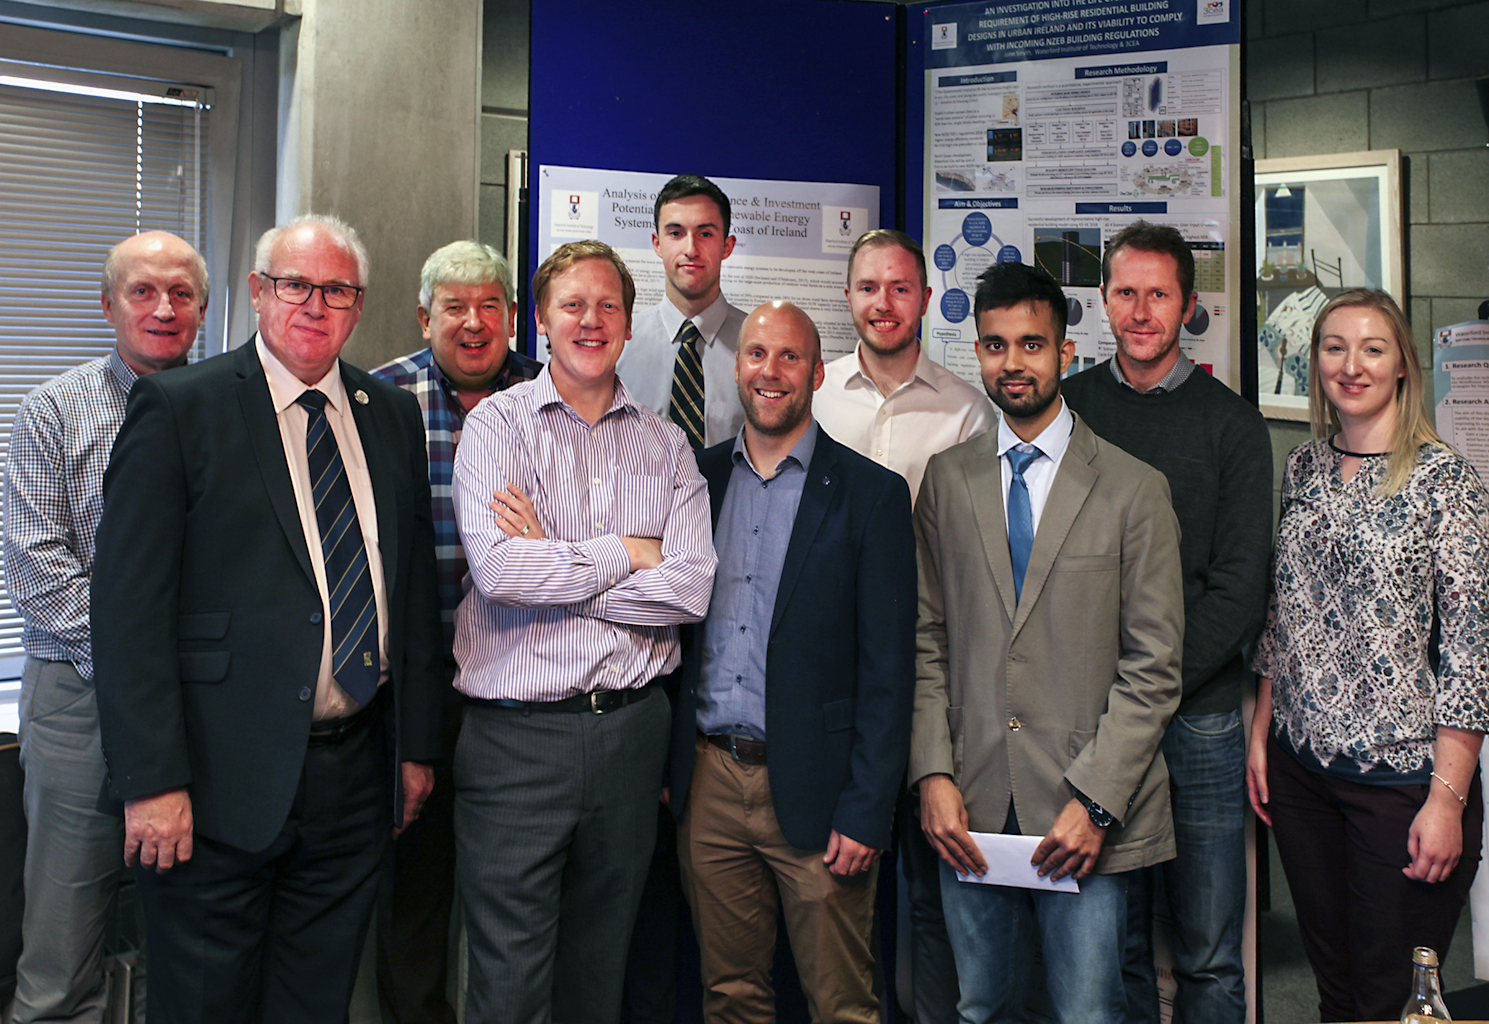 Pictured are Billy Rowsome (Lecturer, WIT), Micheal McNerney (Heat Merchants), James Stack (award runner-up), Paul Martin (CIBSE), Mervin Doyle (Programme Leader, MSc in Sustainable Energy Engineering, WIT), John Smyth (award winner), John Gillespie (award runner-up), Lakshya Sharma (award 2nd place), Colm Tynan (Lecturer, WIT), Dr. Andrea Bourke (Lecturer, WIT).